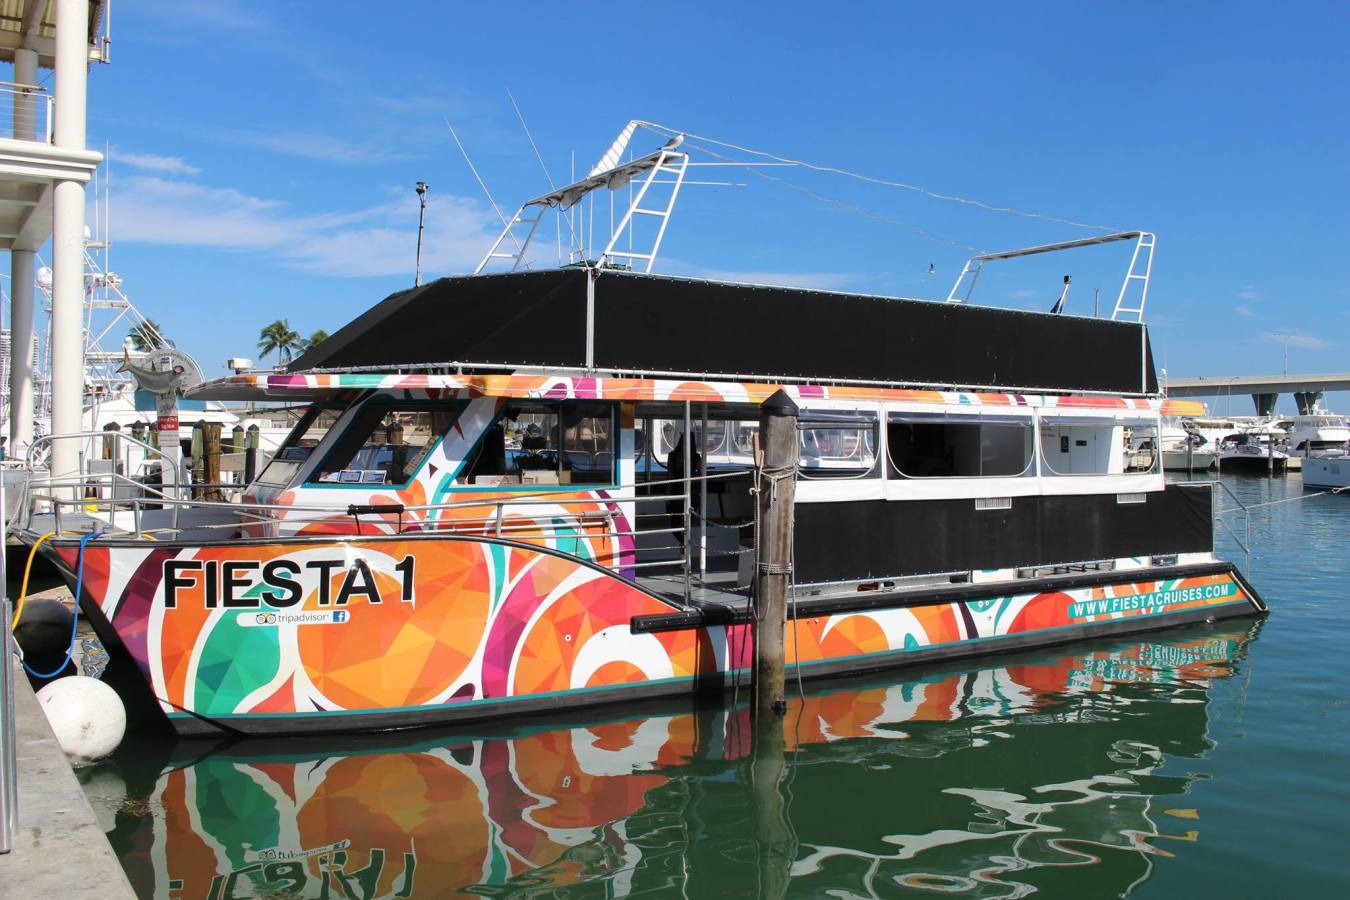 Capt. Jimmy's Fiesta Cruises